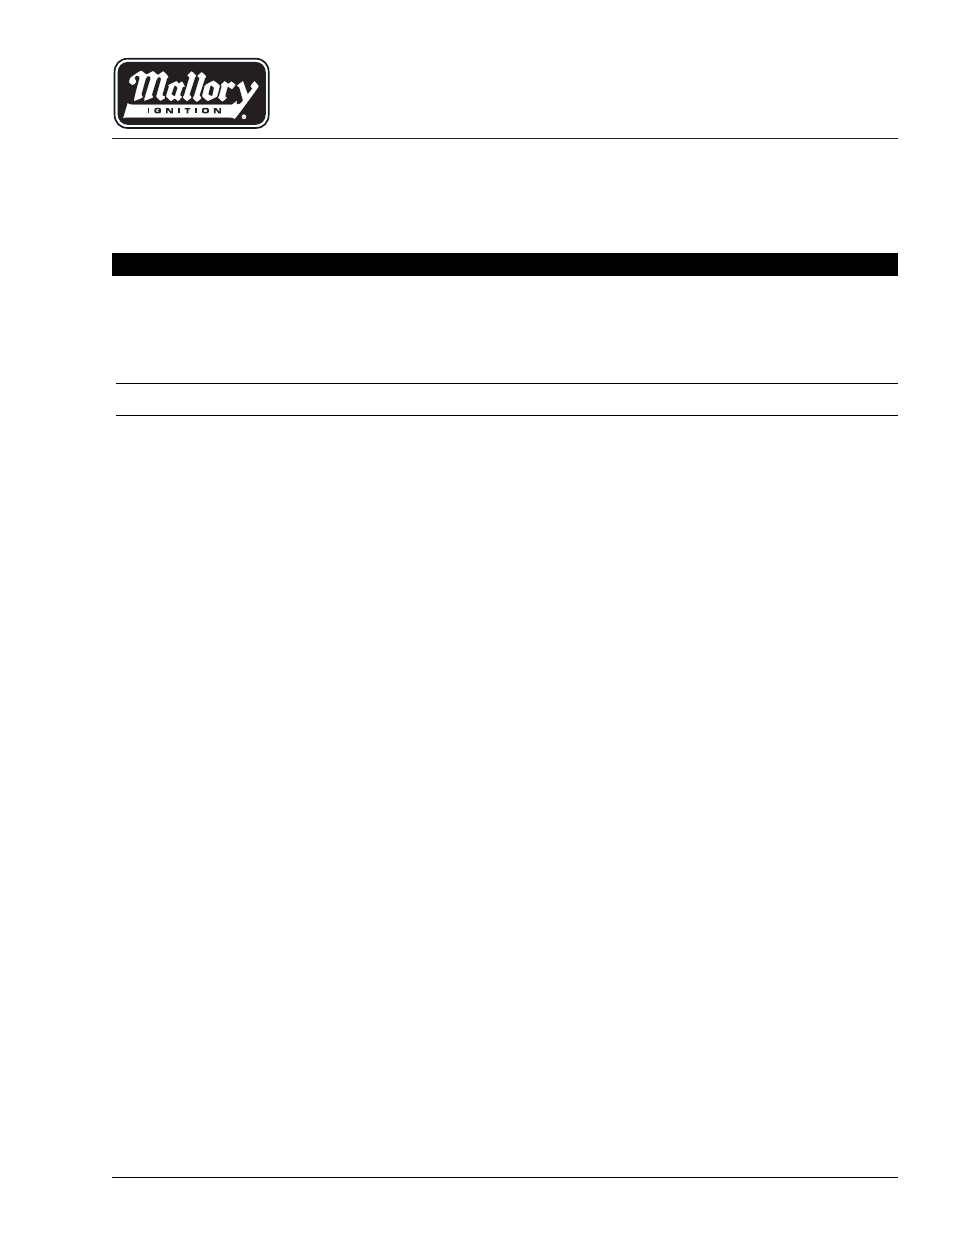 Mallory ignition mallory unilite distributor user manual 13 mallory ignition mallory unilite distributor user manual 13 pages also for mallory unilite distributor 605 sciox Image collections